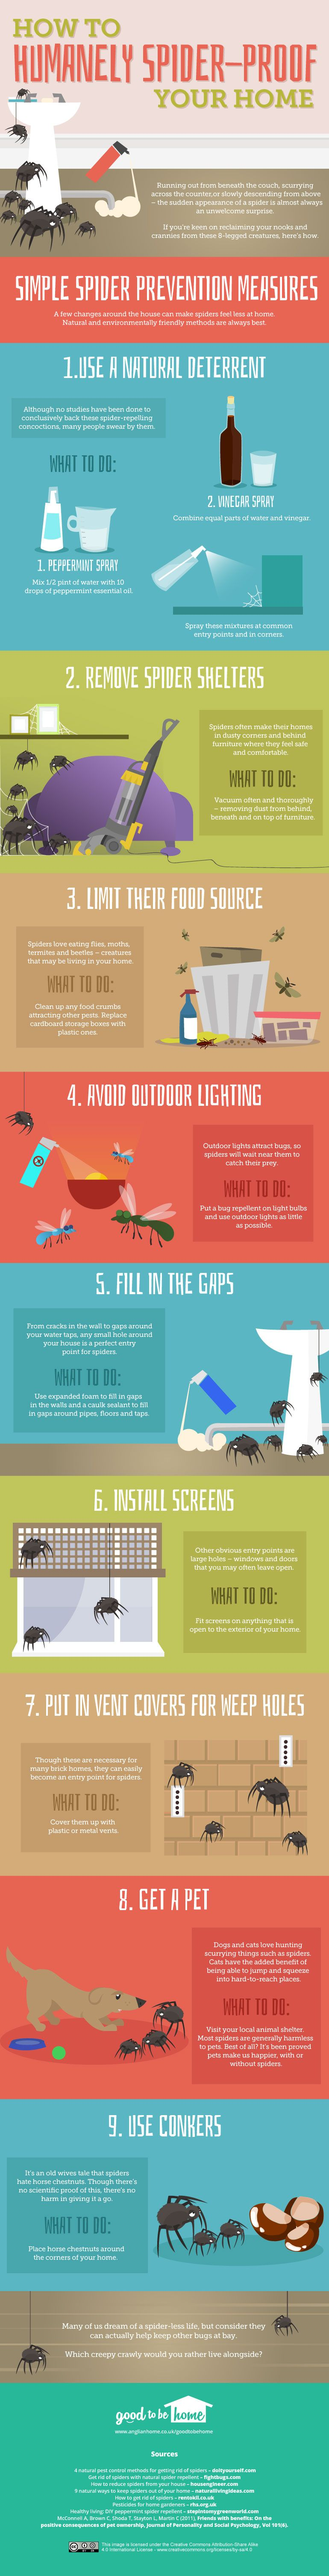 how to get rid of spiders from your home infographic